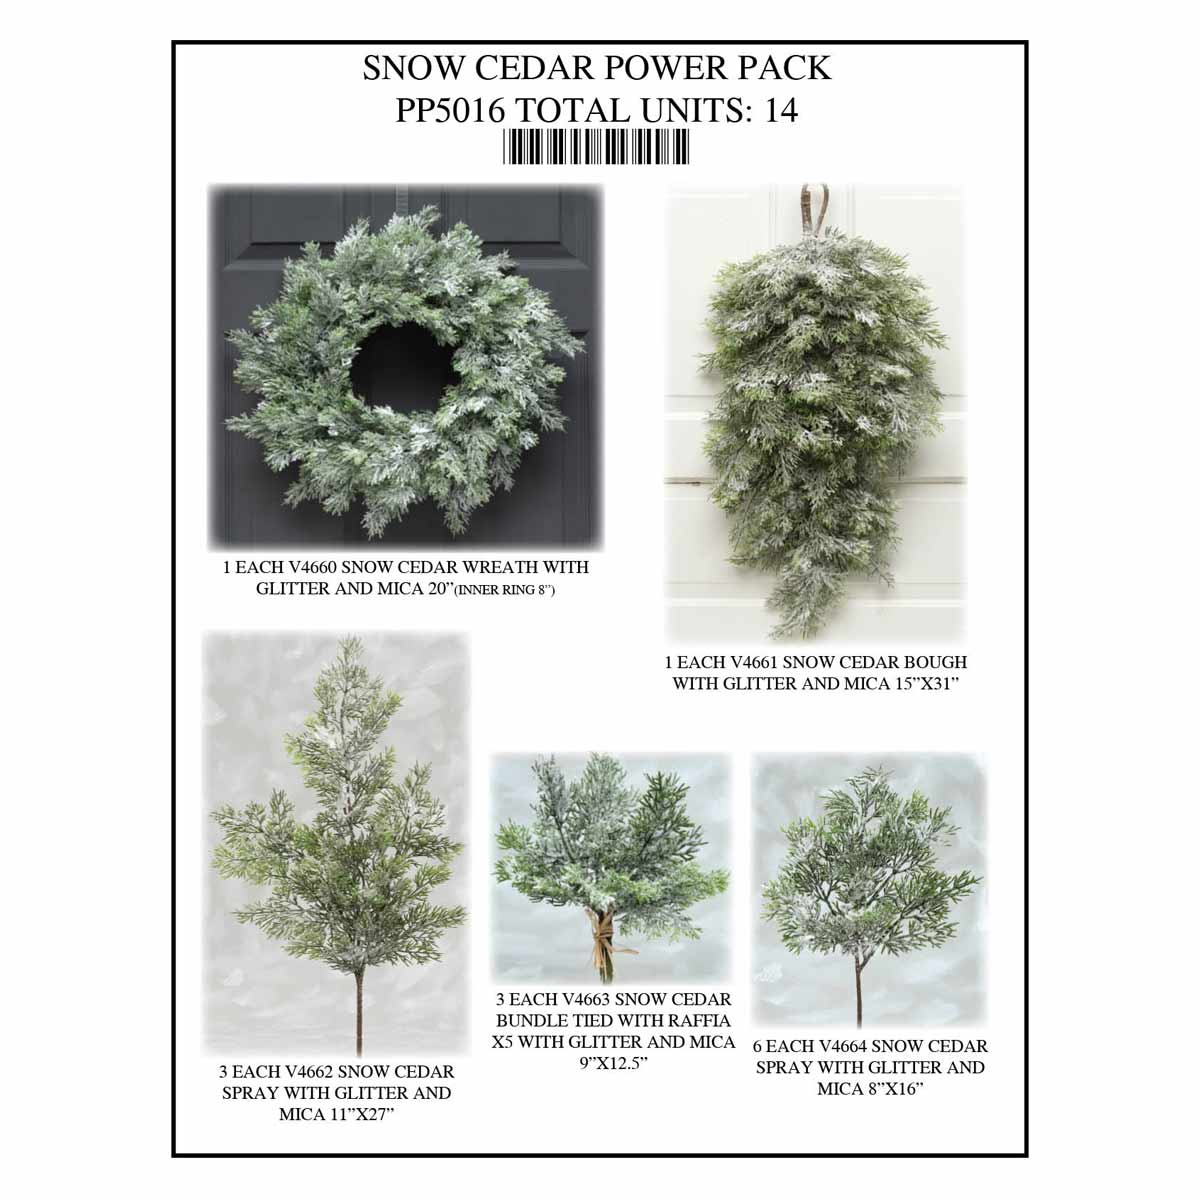 CEDAR SNOW POWER PACK 14 UNITS